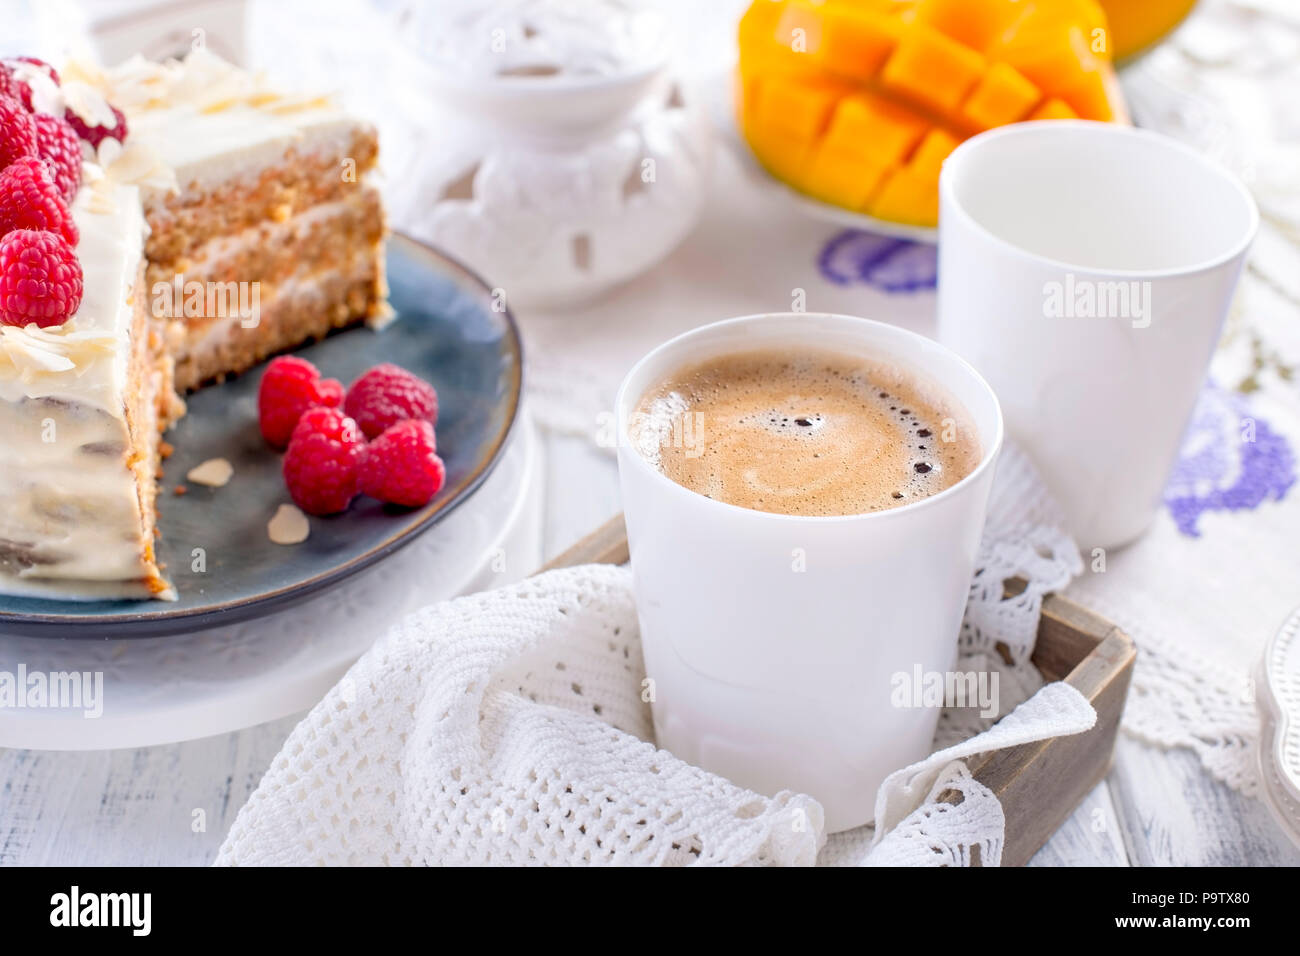 Cut the cake with white cream, for breakfast. A mango fruit. White background, tablecloth with lace, a cup of coffee and free space for text or advertising. - Stock Image